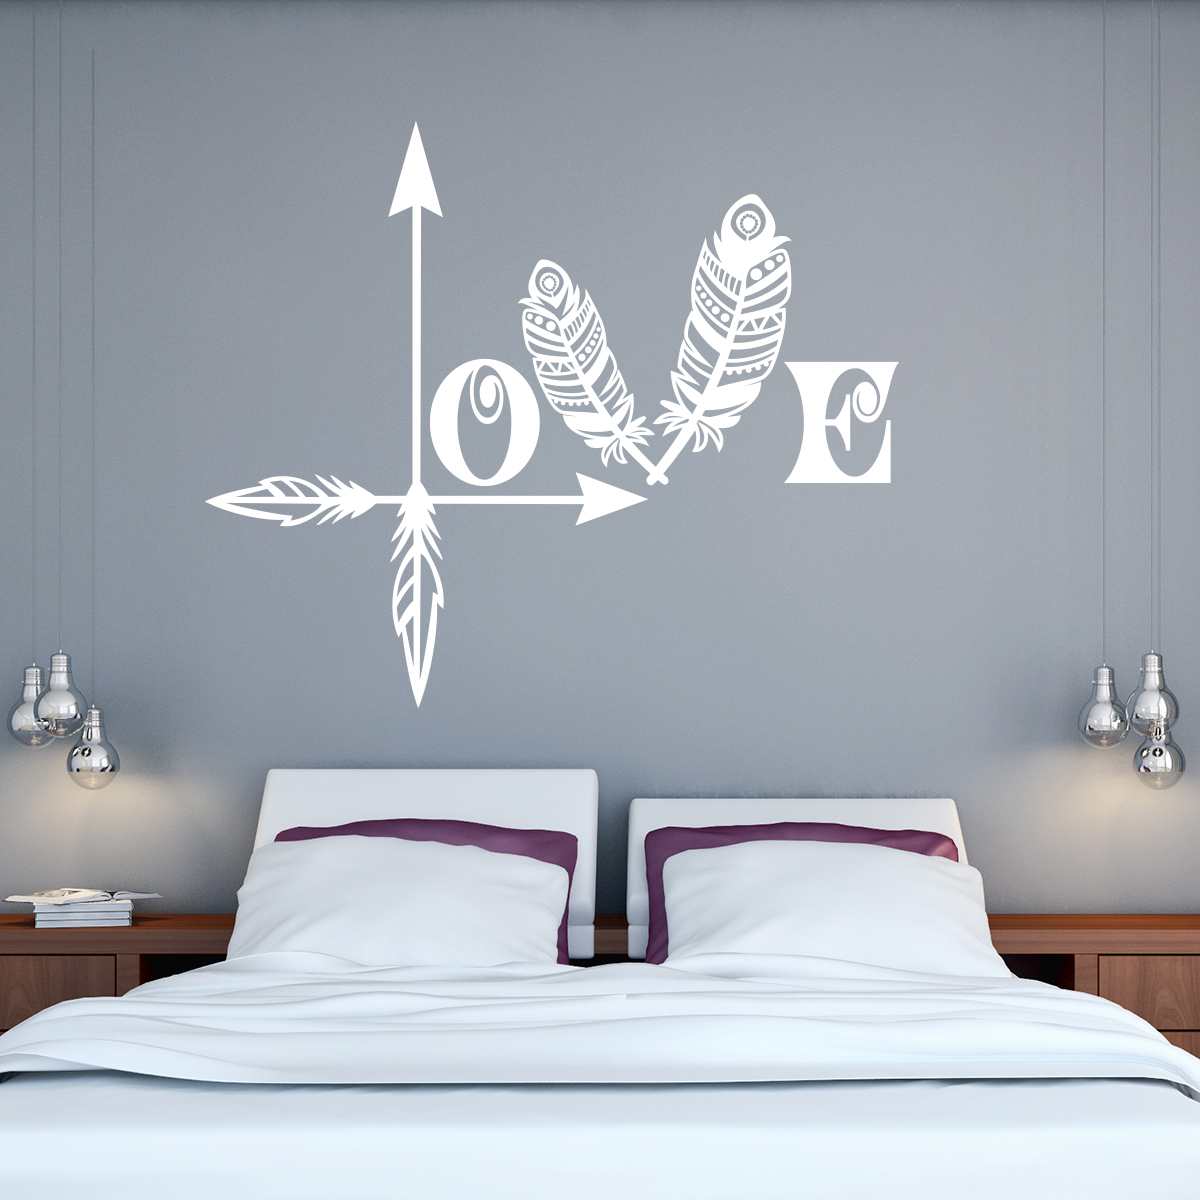 Sticker citation love et plumes stickers citations anglais ambiance sticker - Stickers muraux citations chambre ...